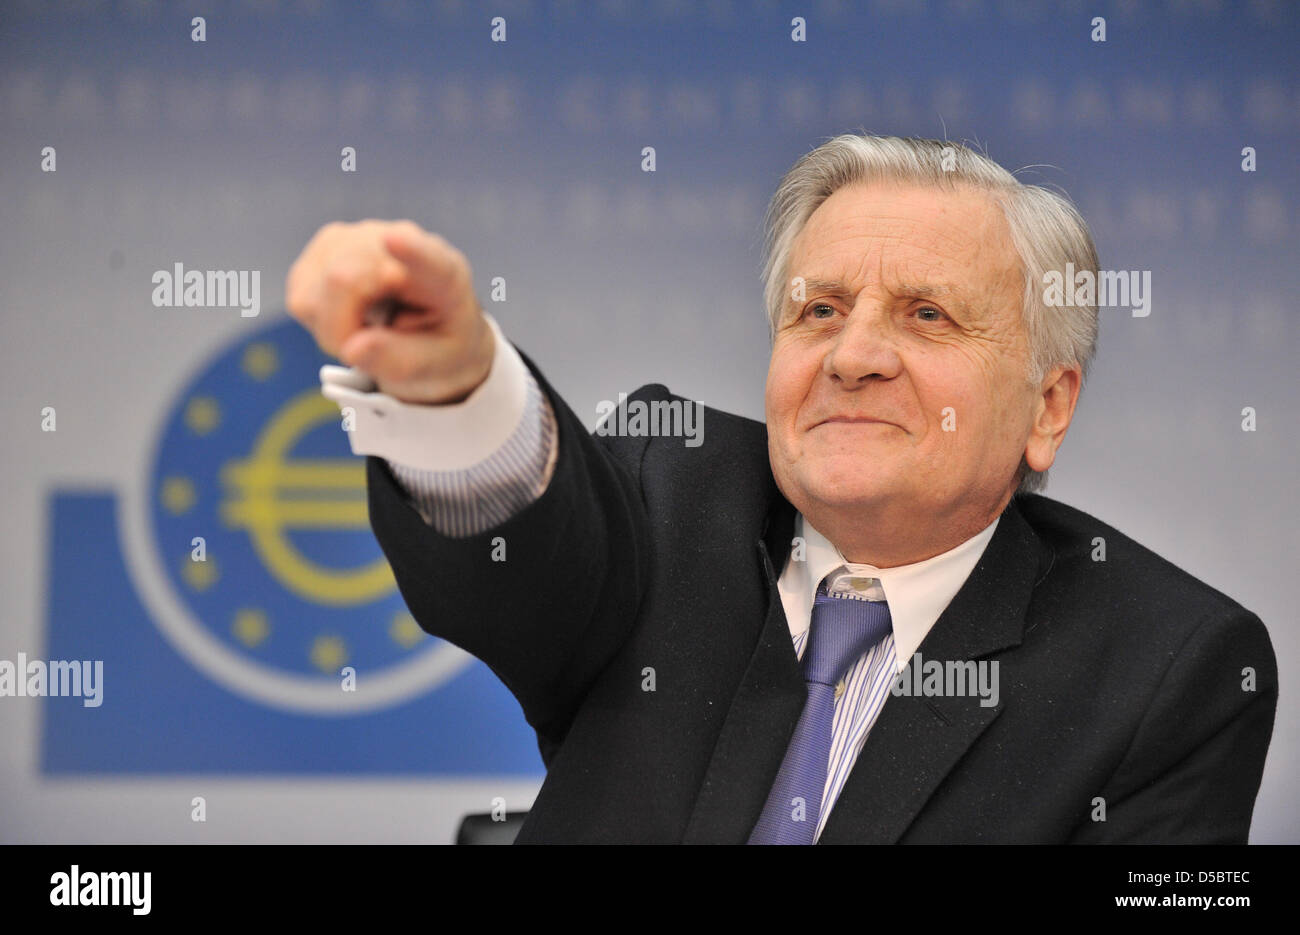 President of European Central Bank (ECB) Jean-Claude Trichet gestures during a press conference in Frankfurt Main, - Stock Image